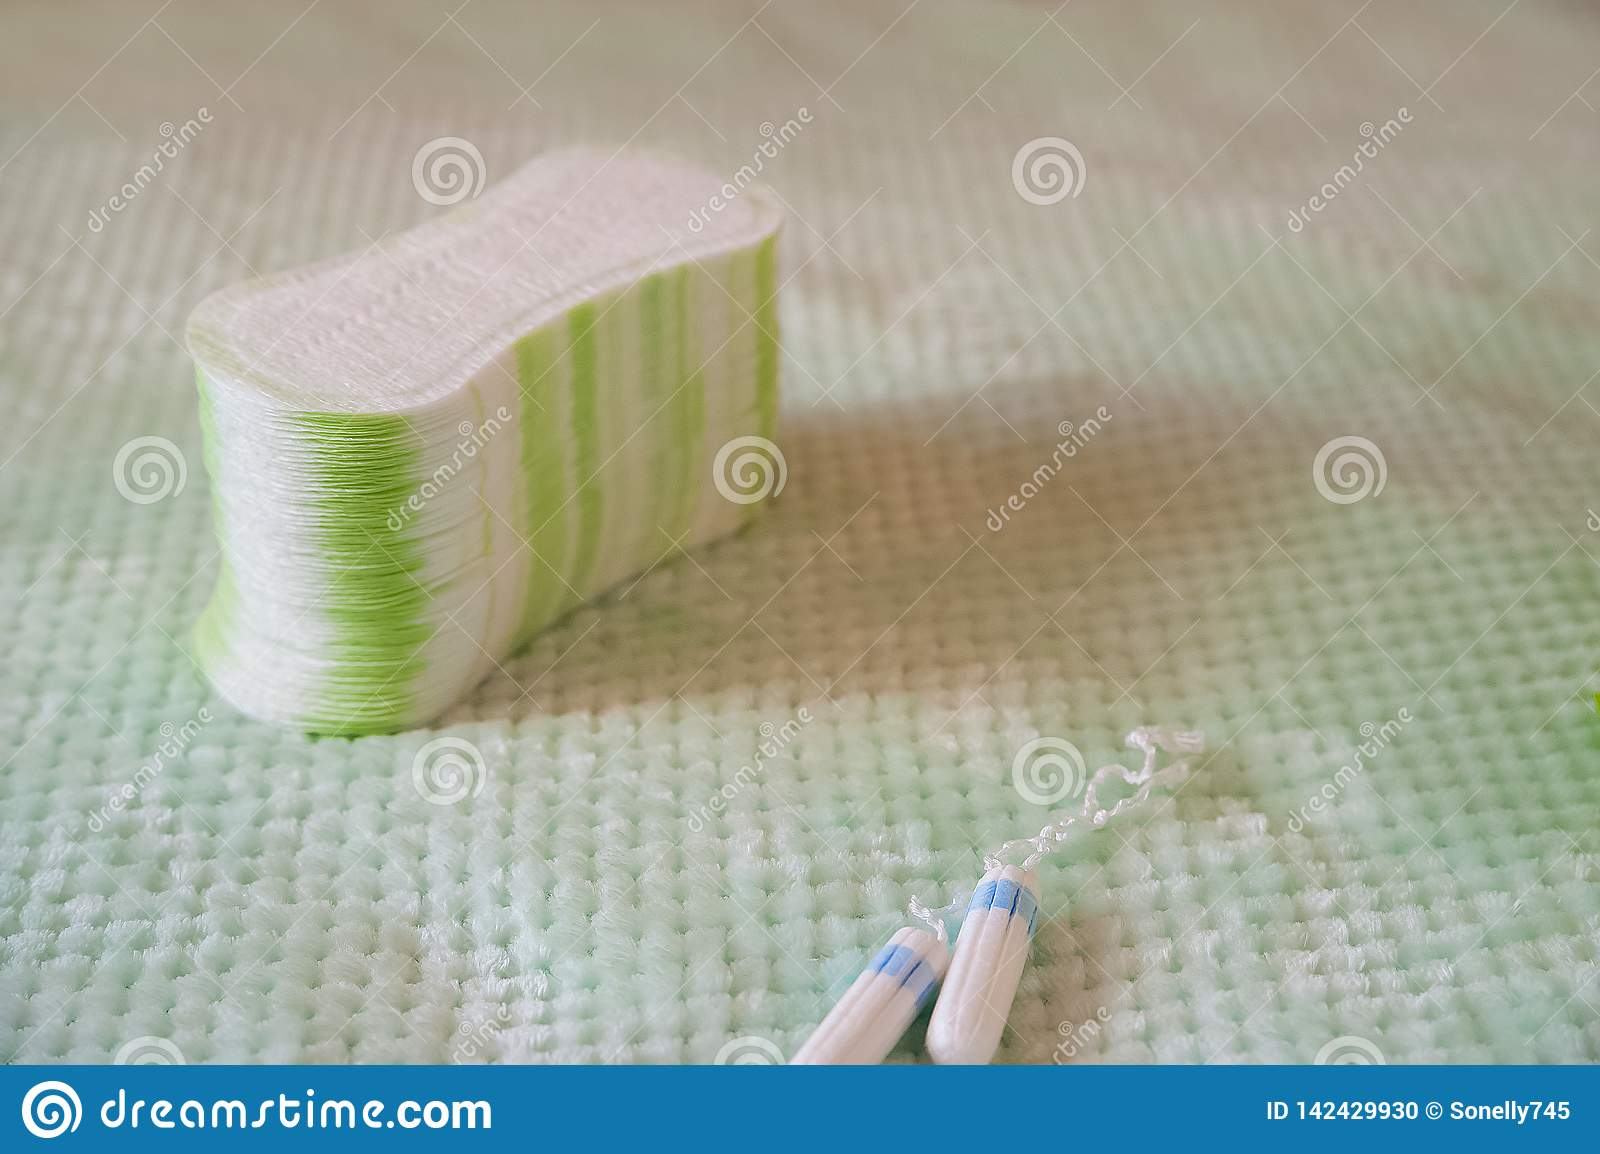 Hygienic tampons and pads on a textured turquoise background. Means of female intimate hygiene close-up and copy space